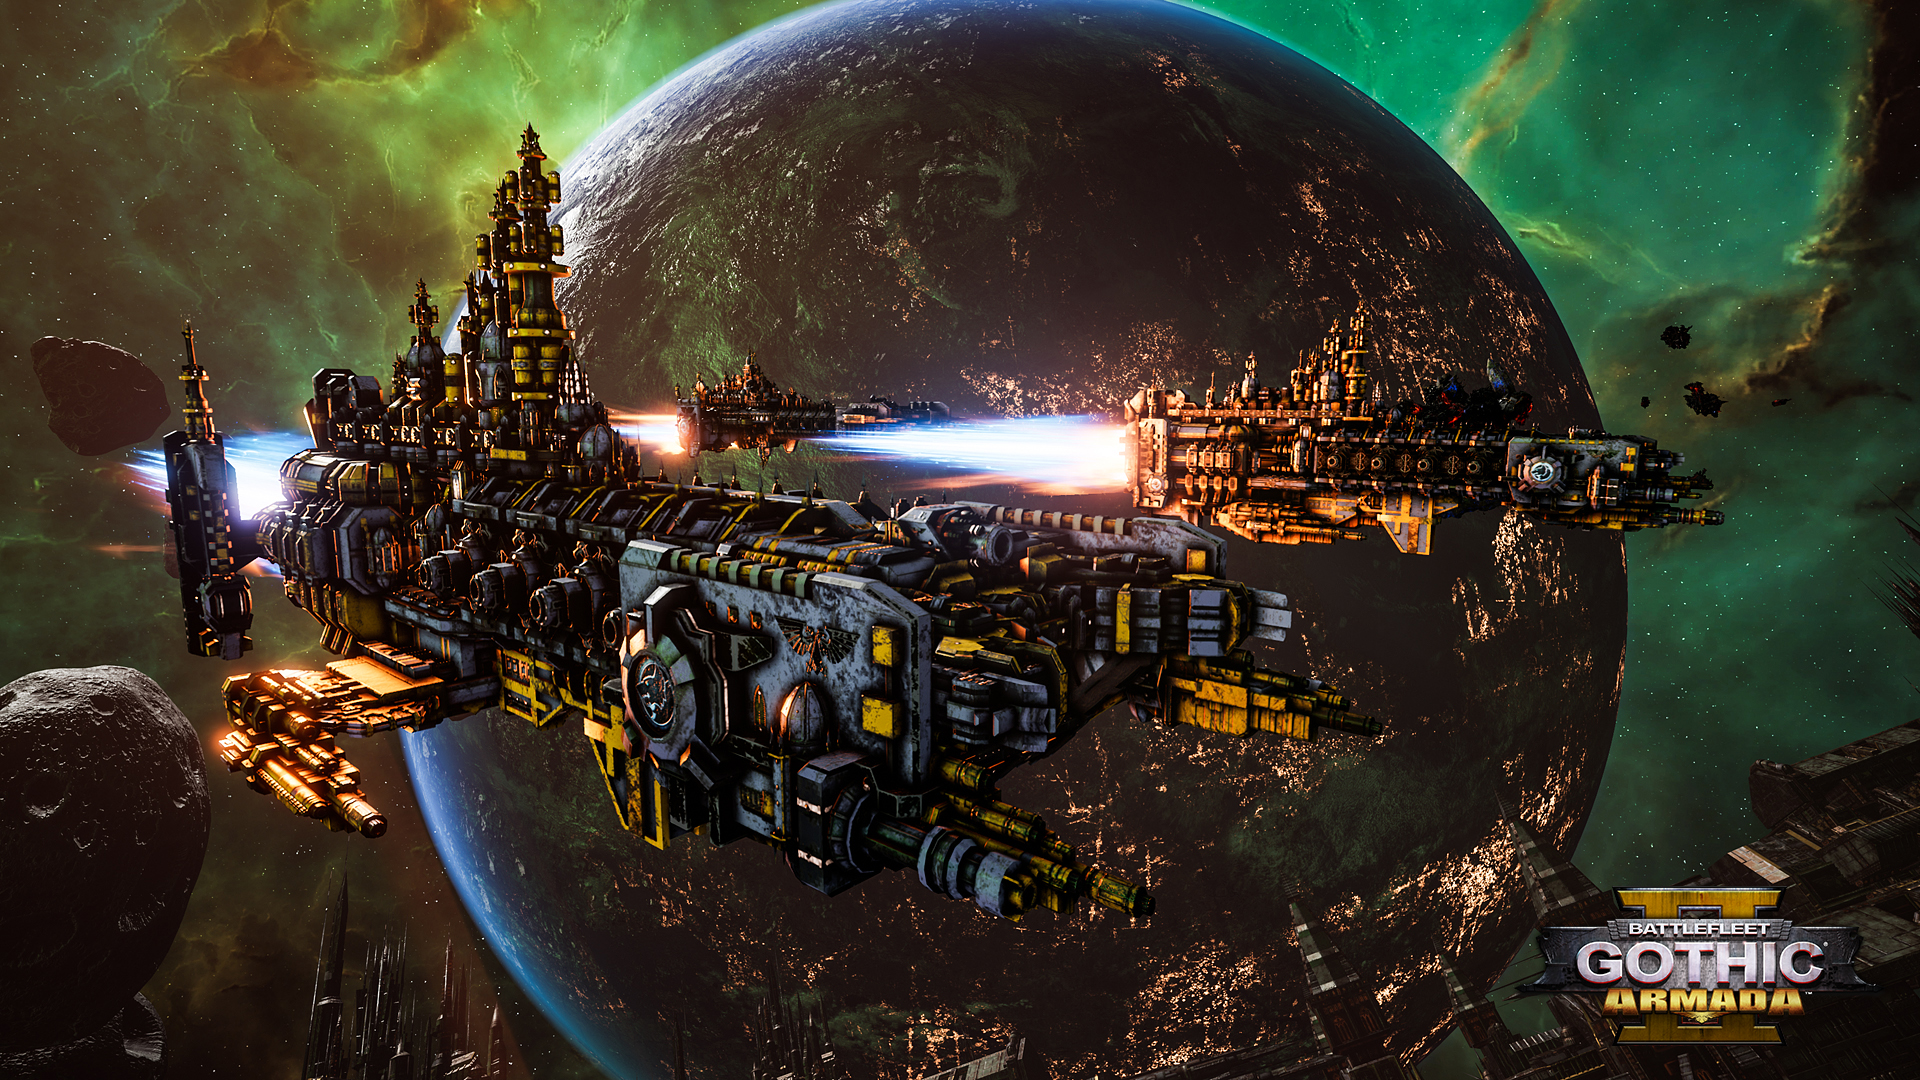 Battlefleet Gothic: Armada 2 is Warhammer 40,000 played at the most epic scale yet